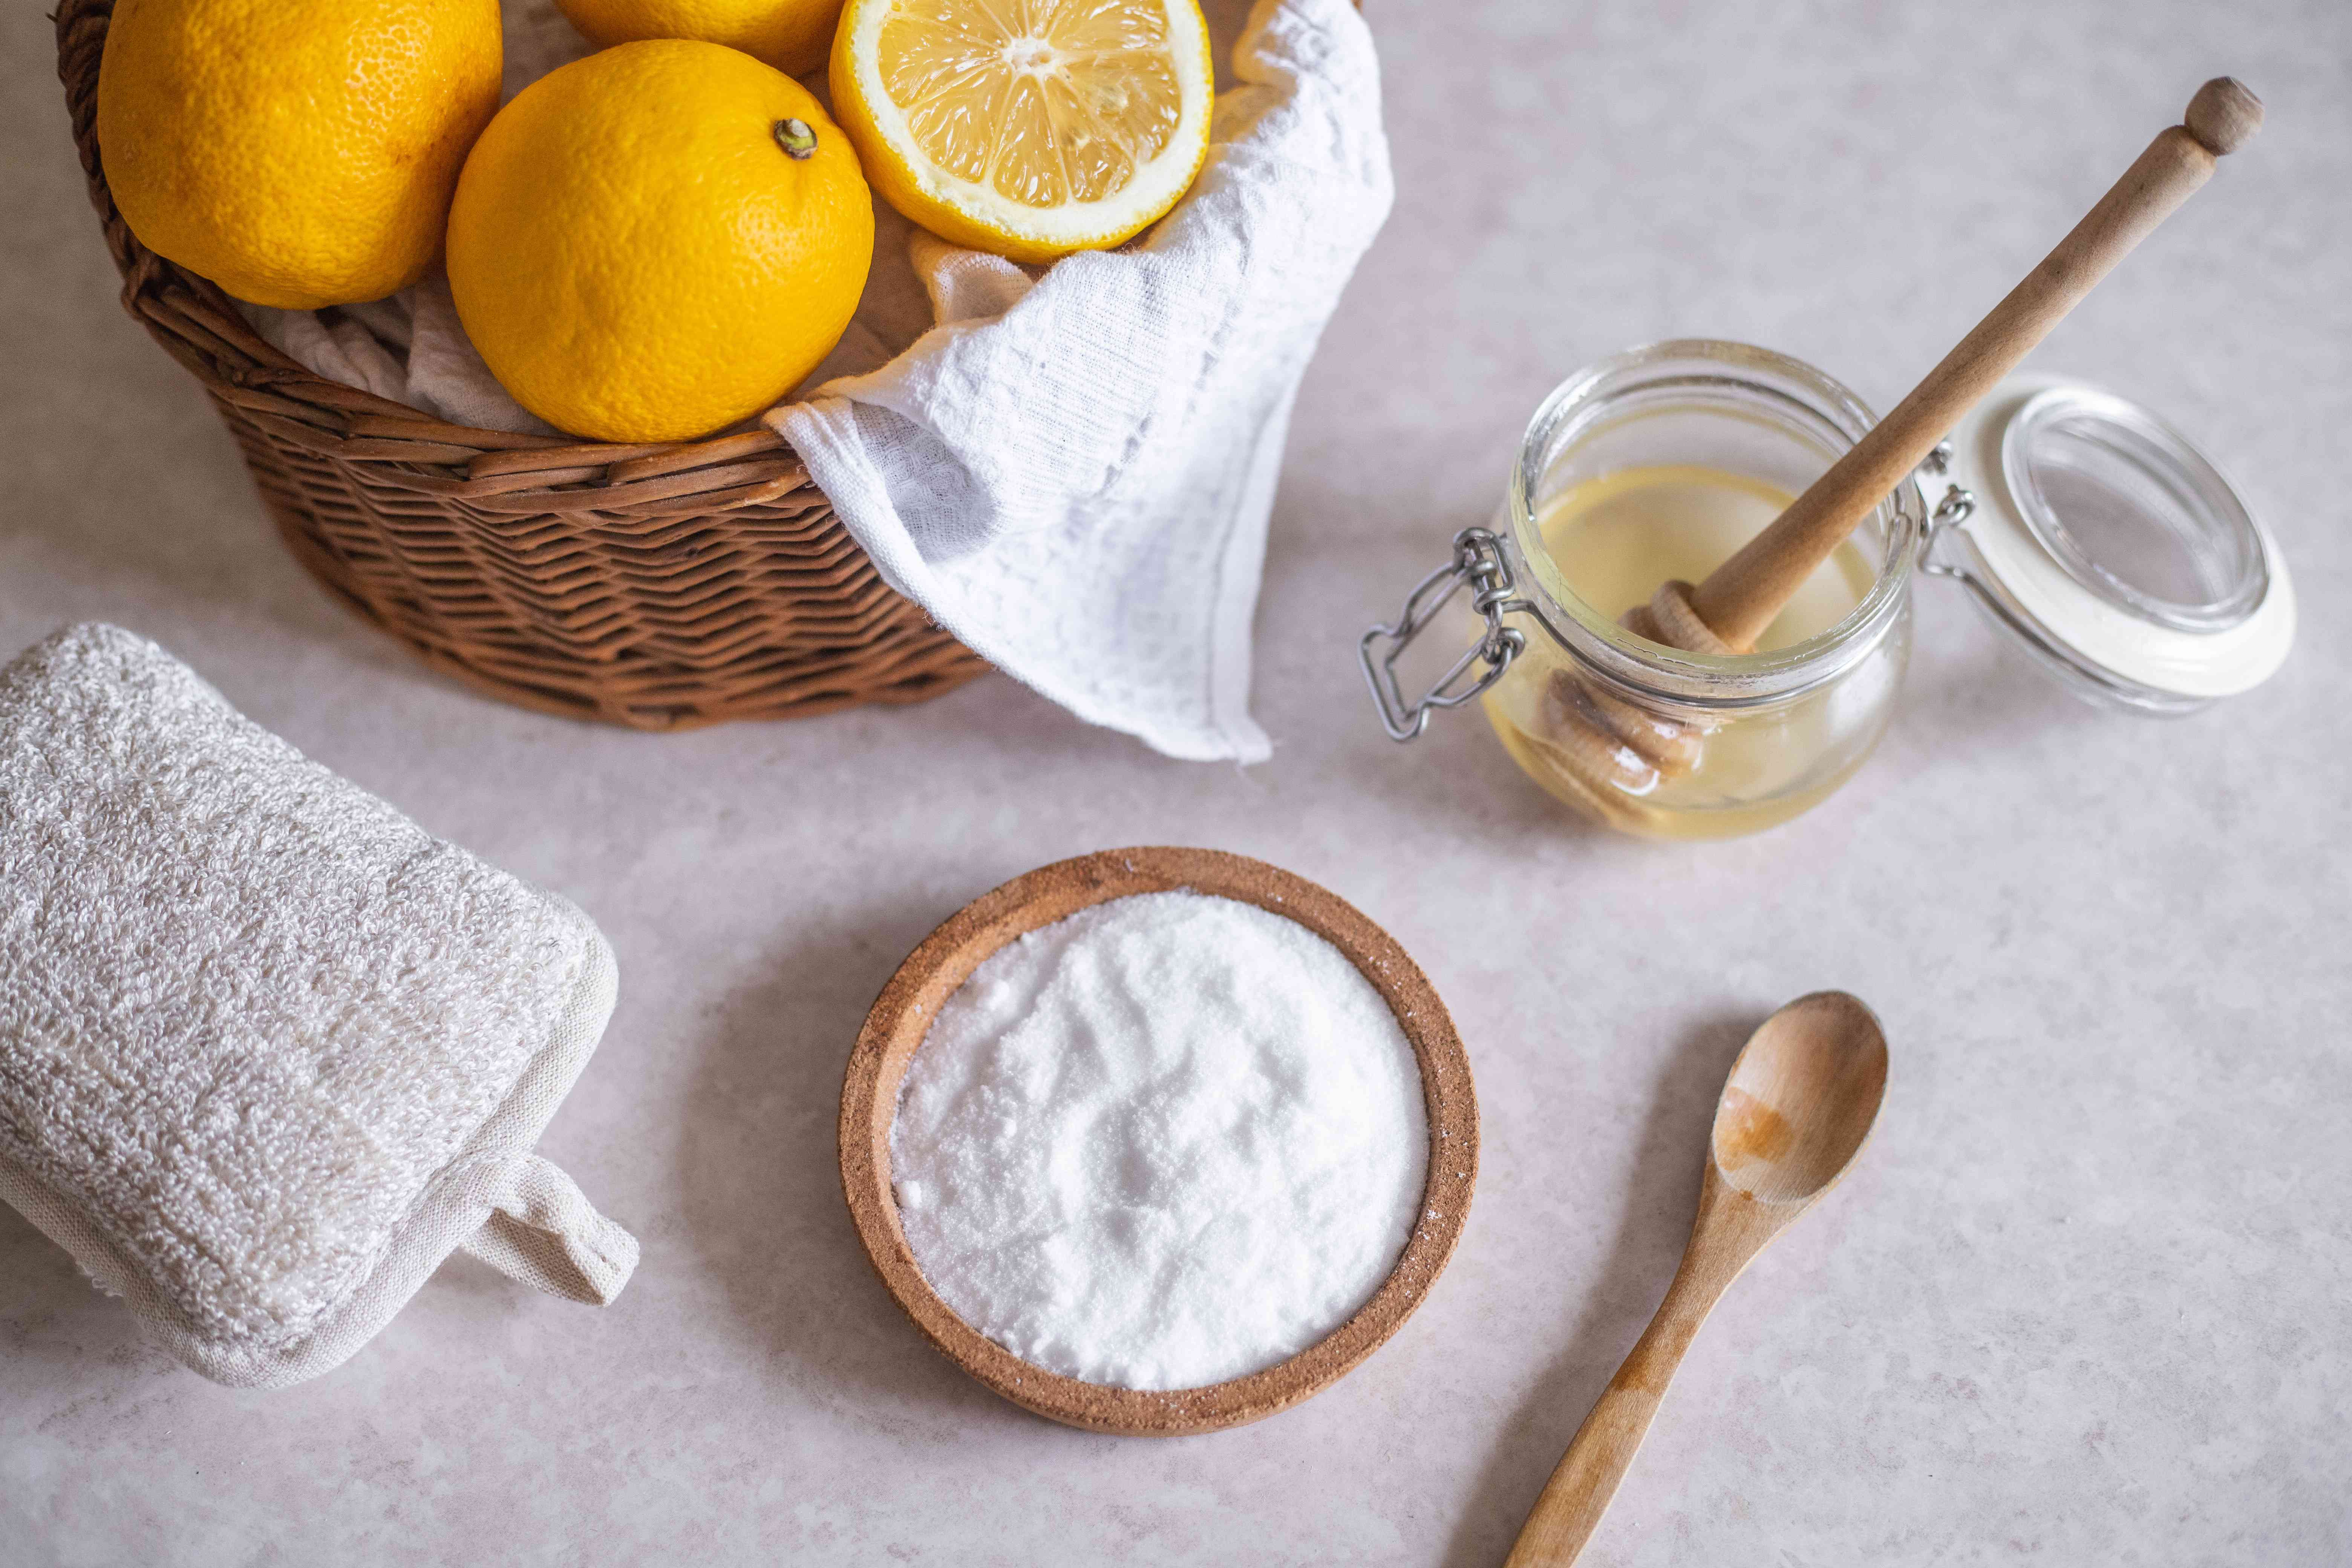 sugar, honey, and lemons in a basket are ingredients for removing blackheads